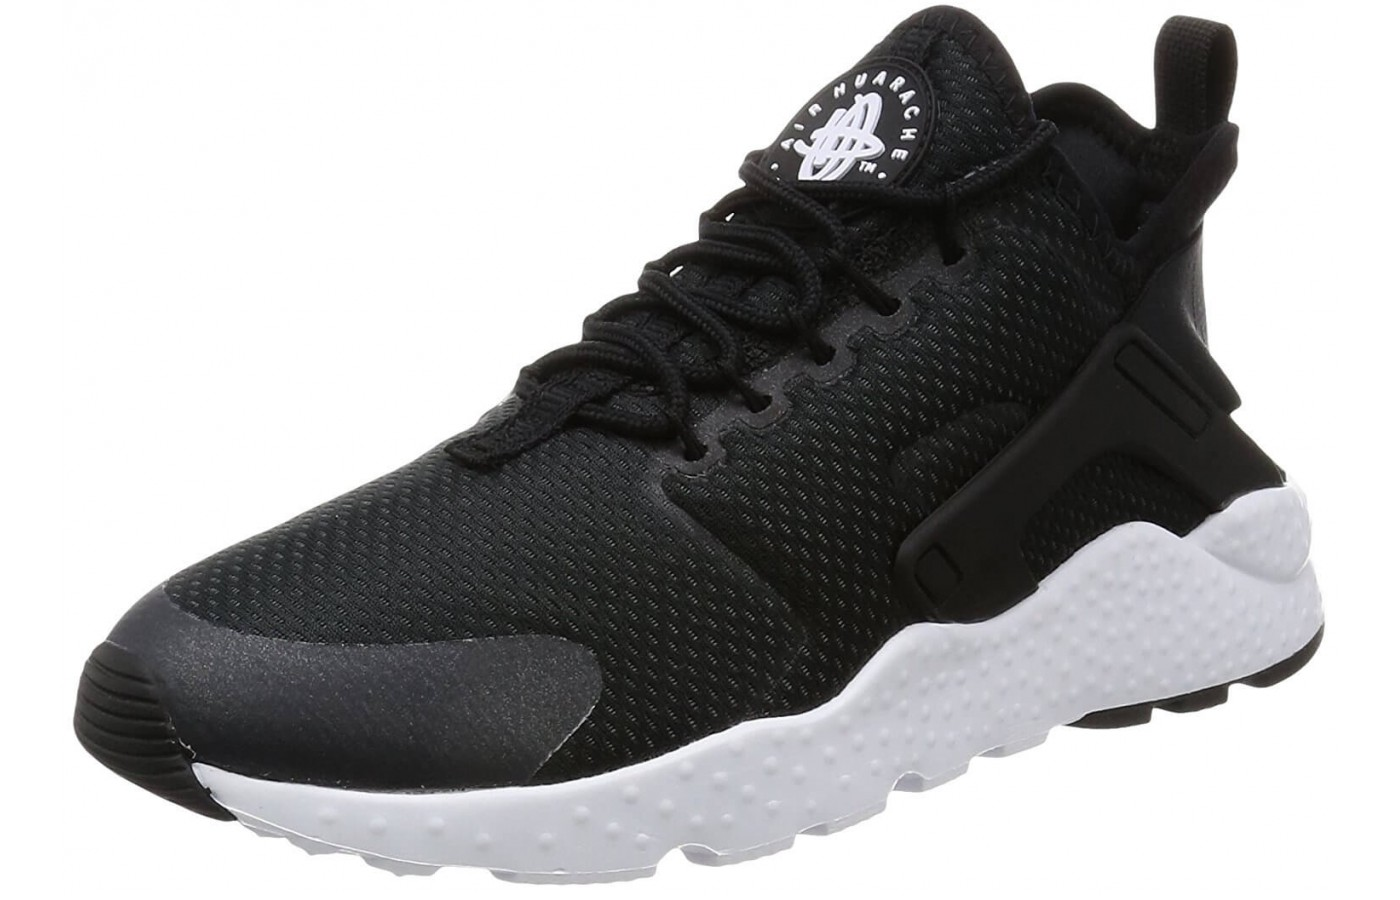 huge selection of ca0d6 af7a4 Although the Nike Air Huarache Ultra has a slight heel drop, it is much  less ...